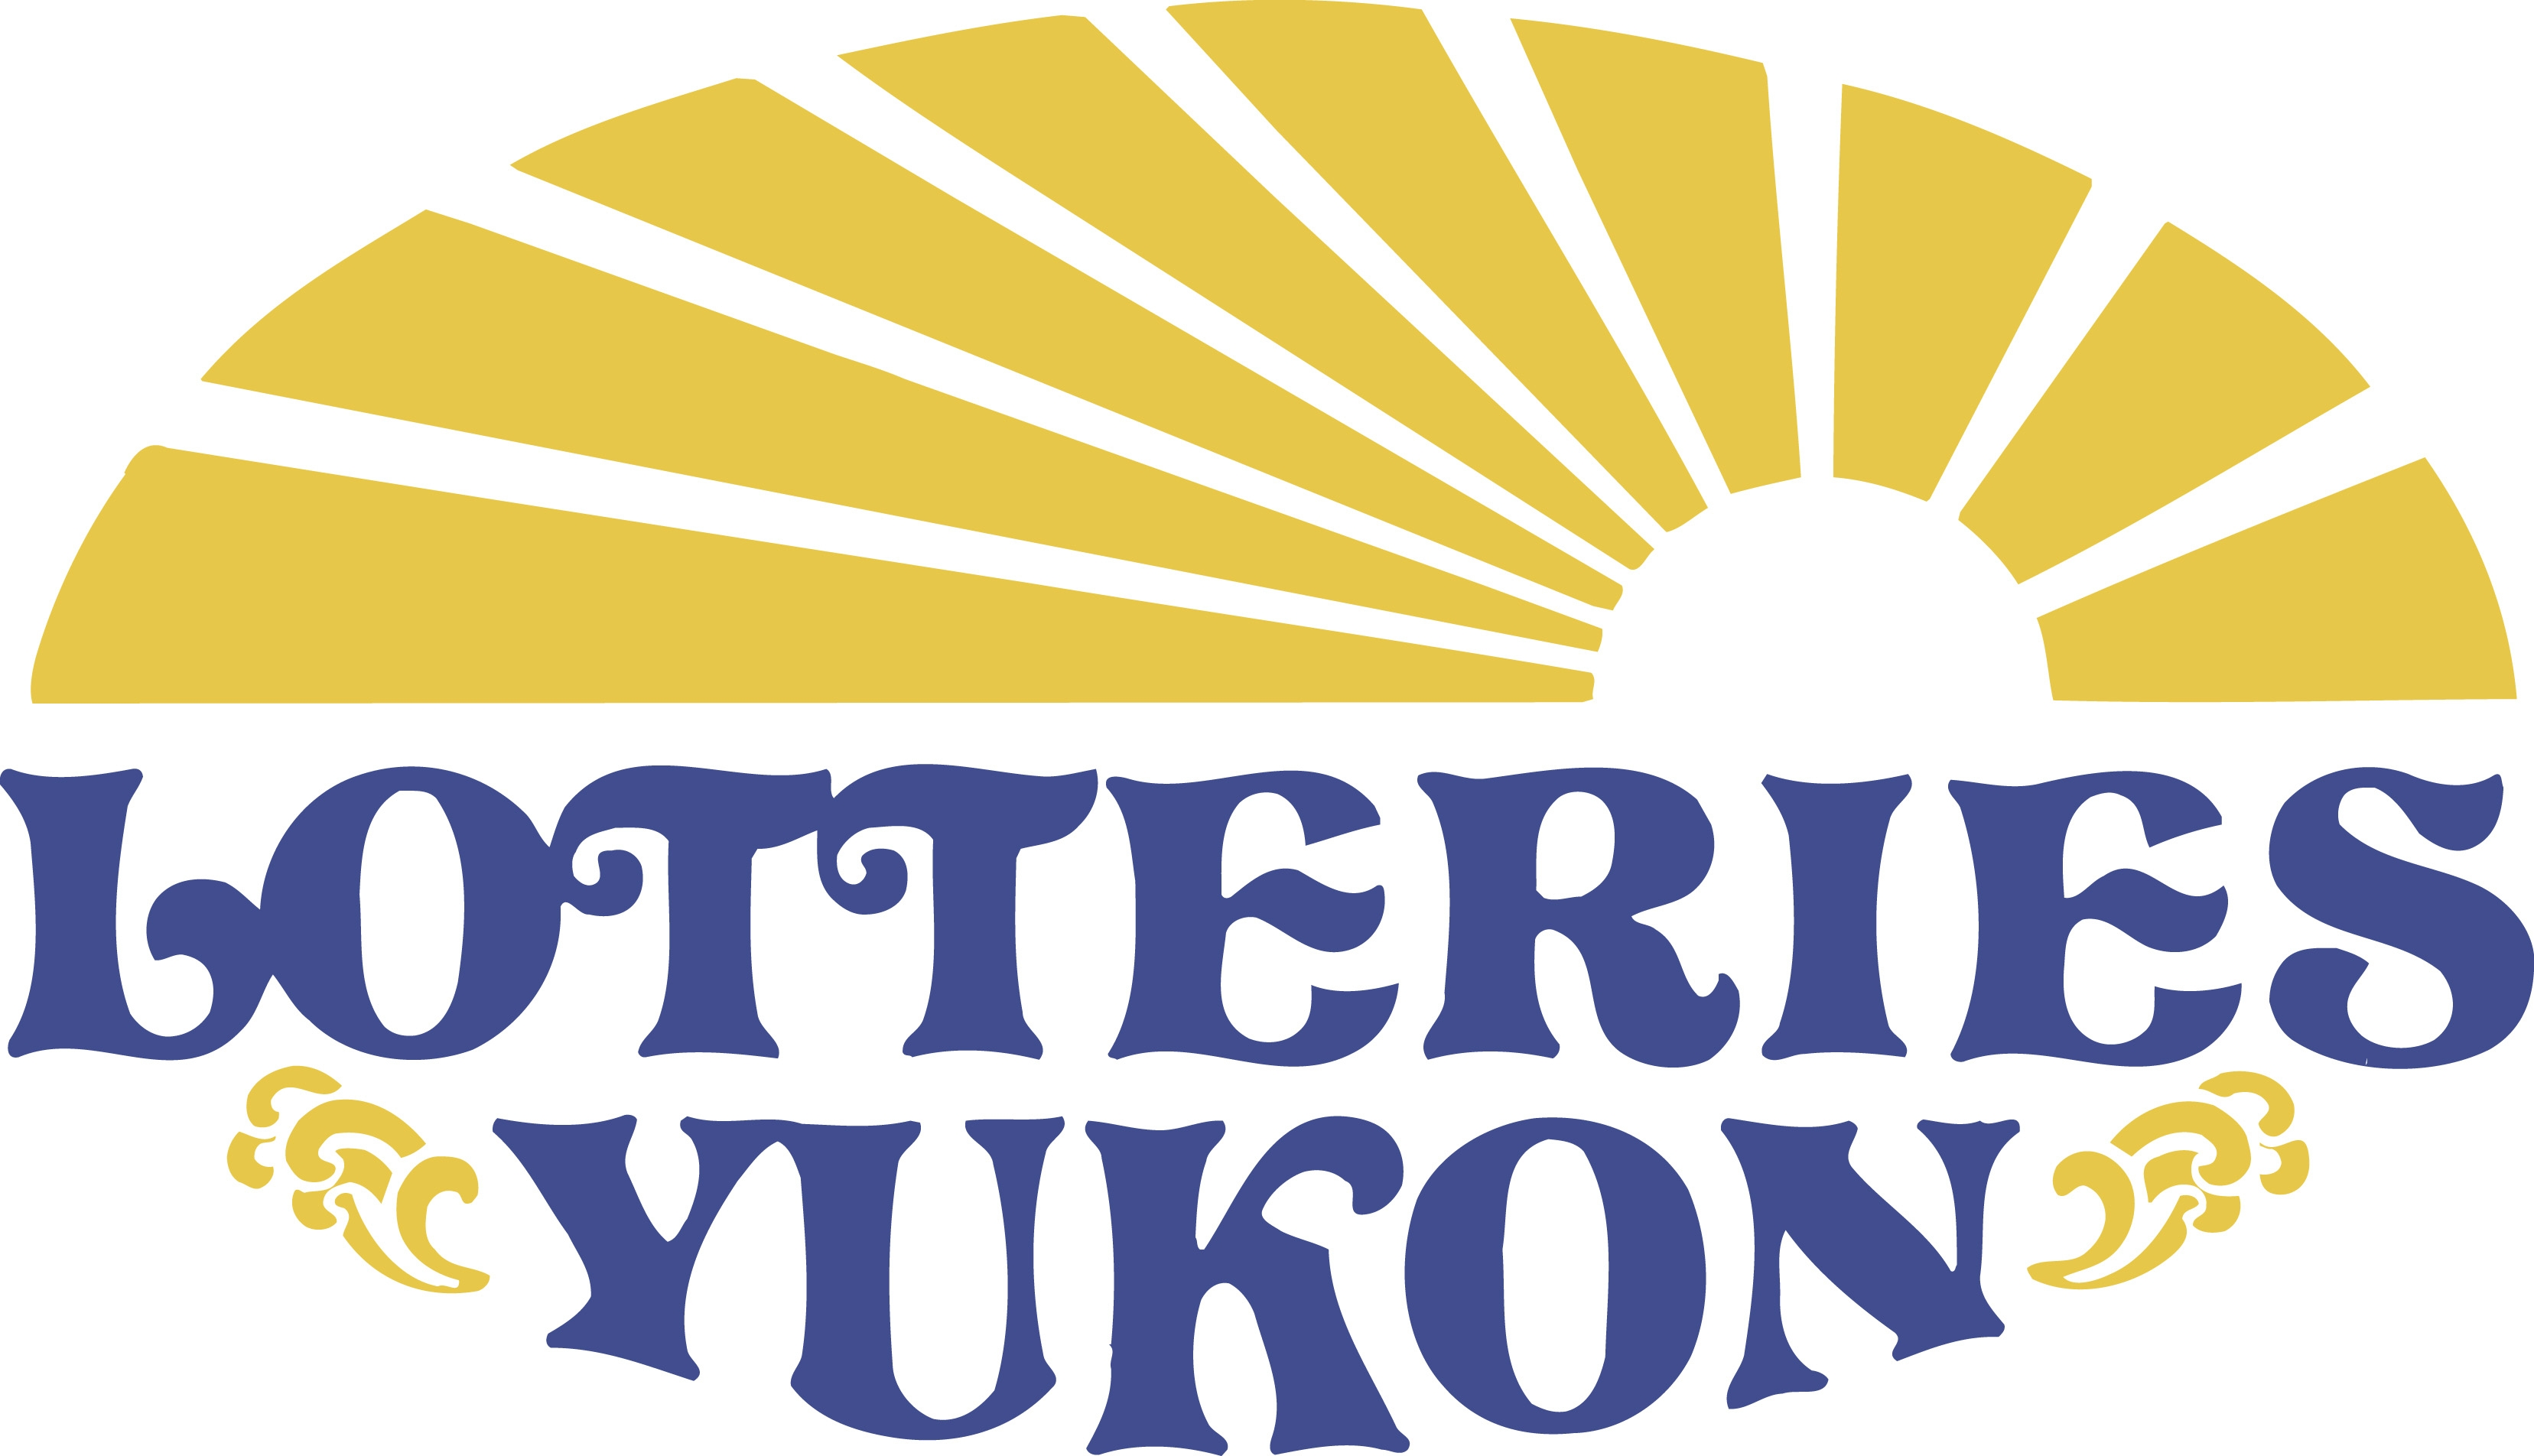 lotteries-yukon-logo